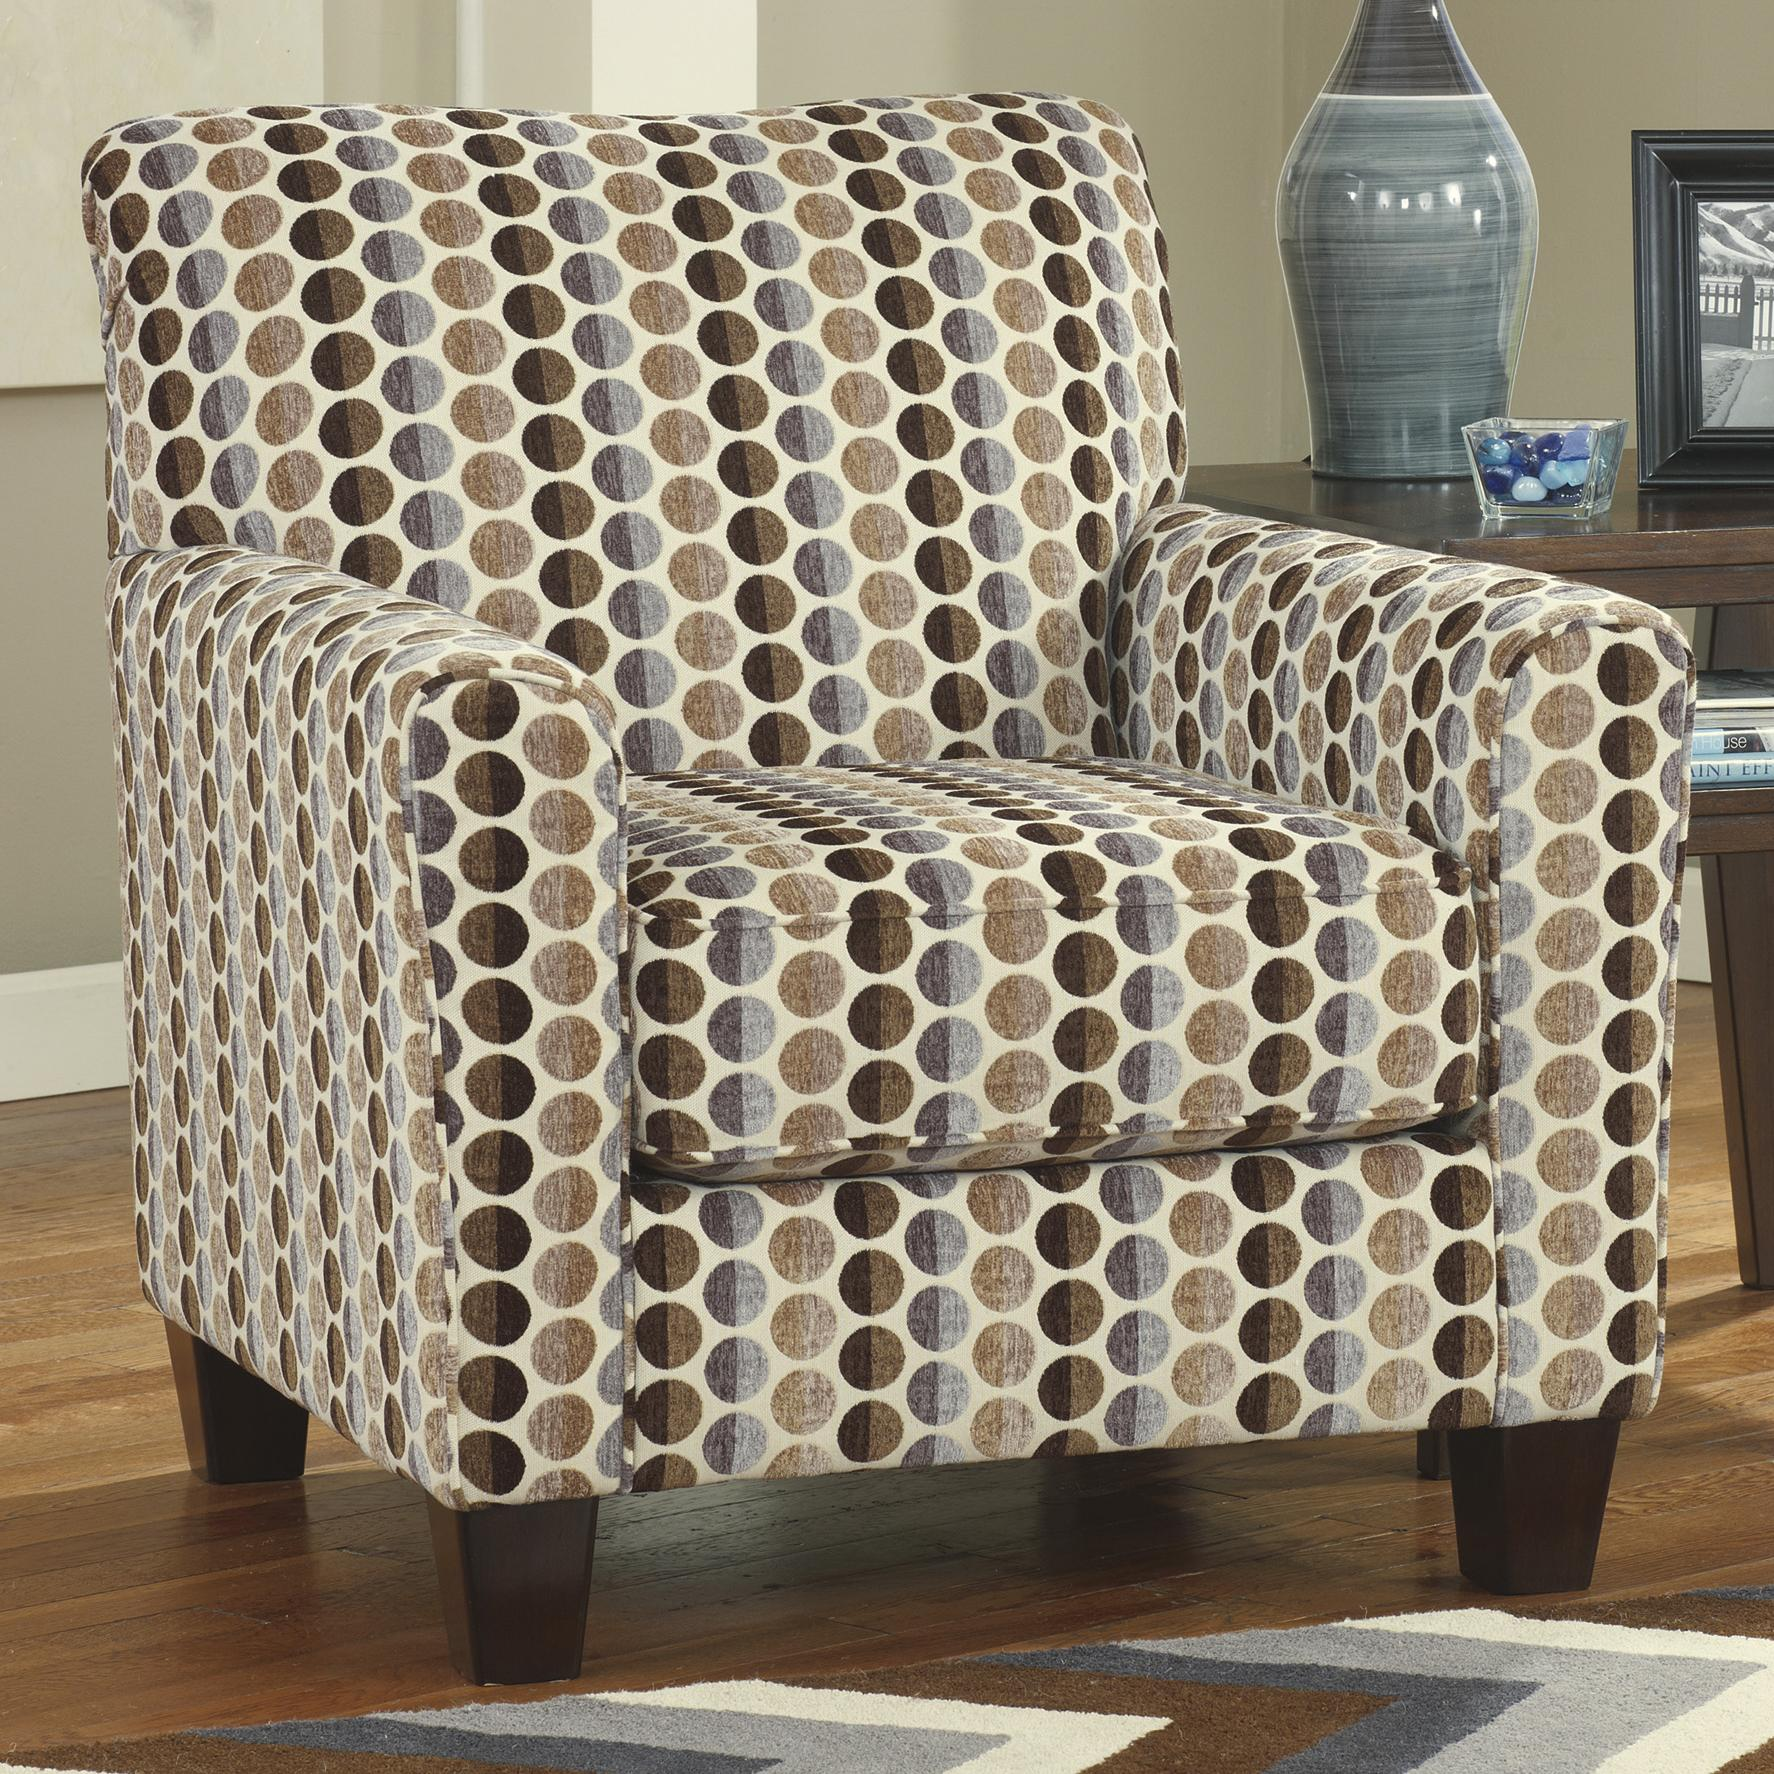 Ashley Furniture Accent Chair Ashley Furniture Geordie Contemporary Accent Chair With